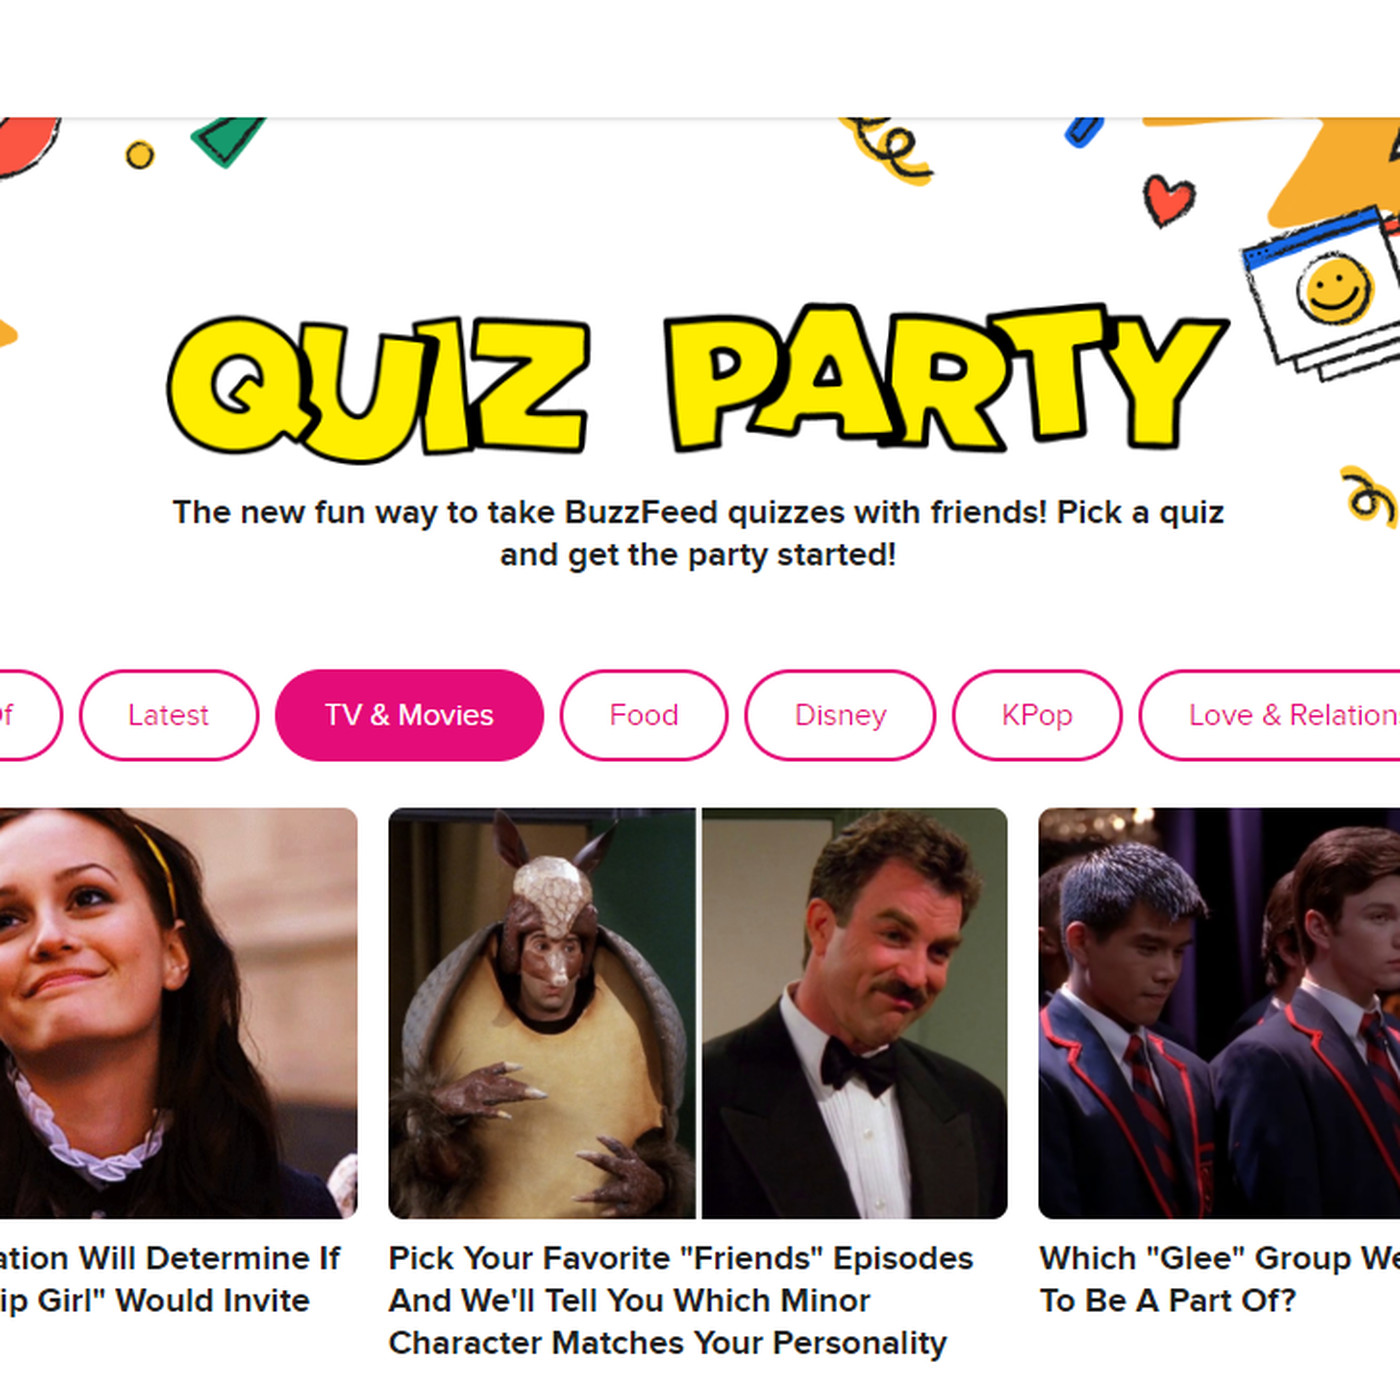 Fortnite Buzzfeed Quiz Buzzfeed S Quizzes Get New Multiplayer Mode To Help You Socialize From Home The Verge